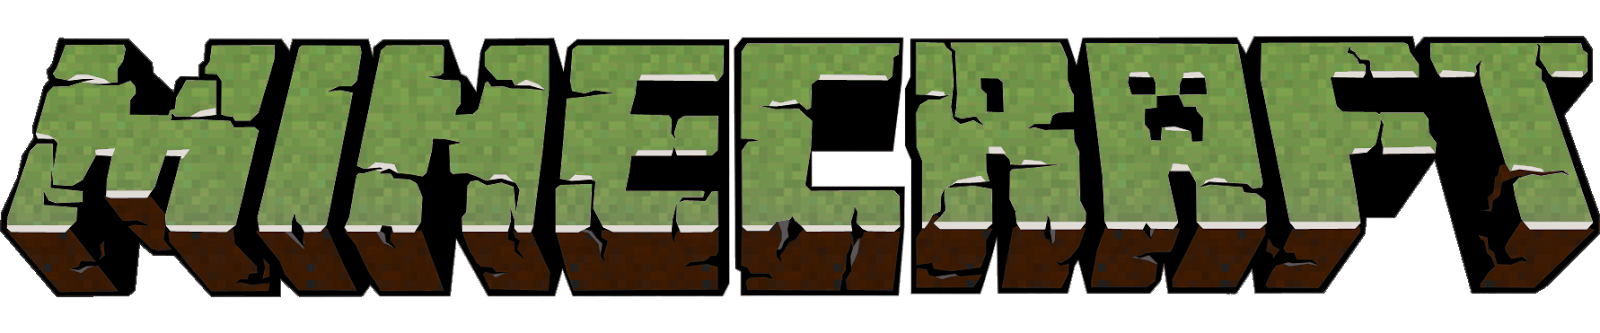 Minecraft Grass text